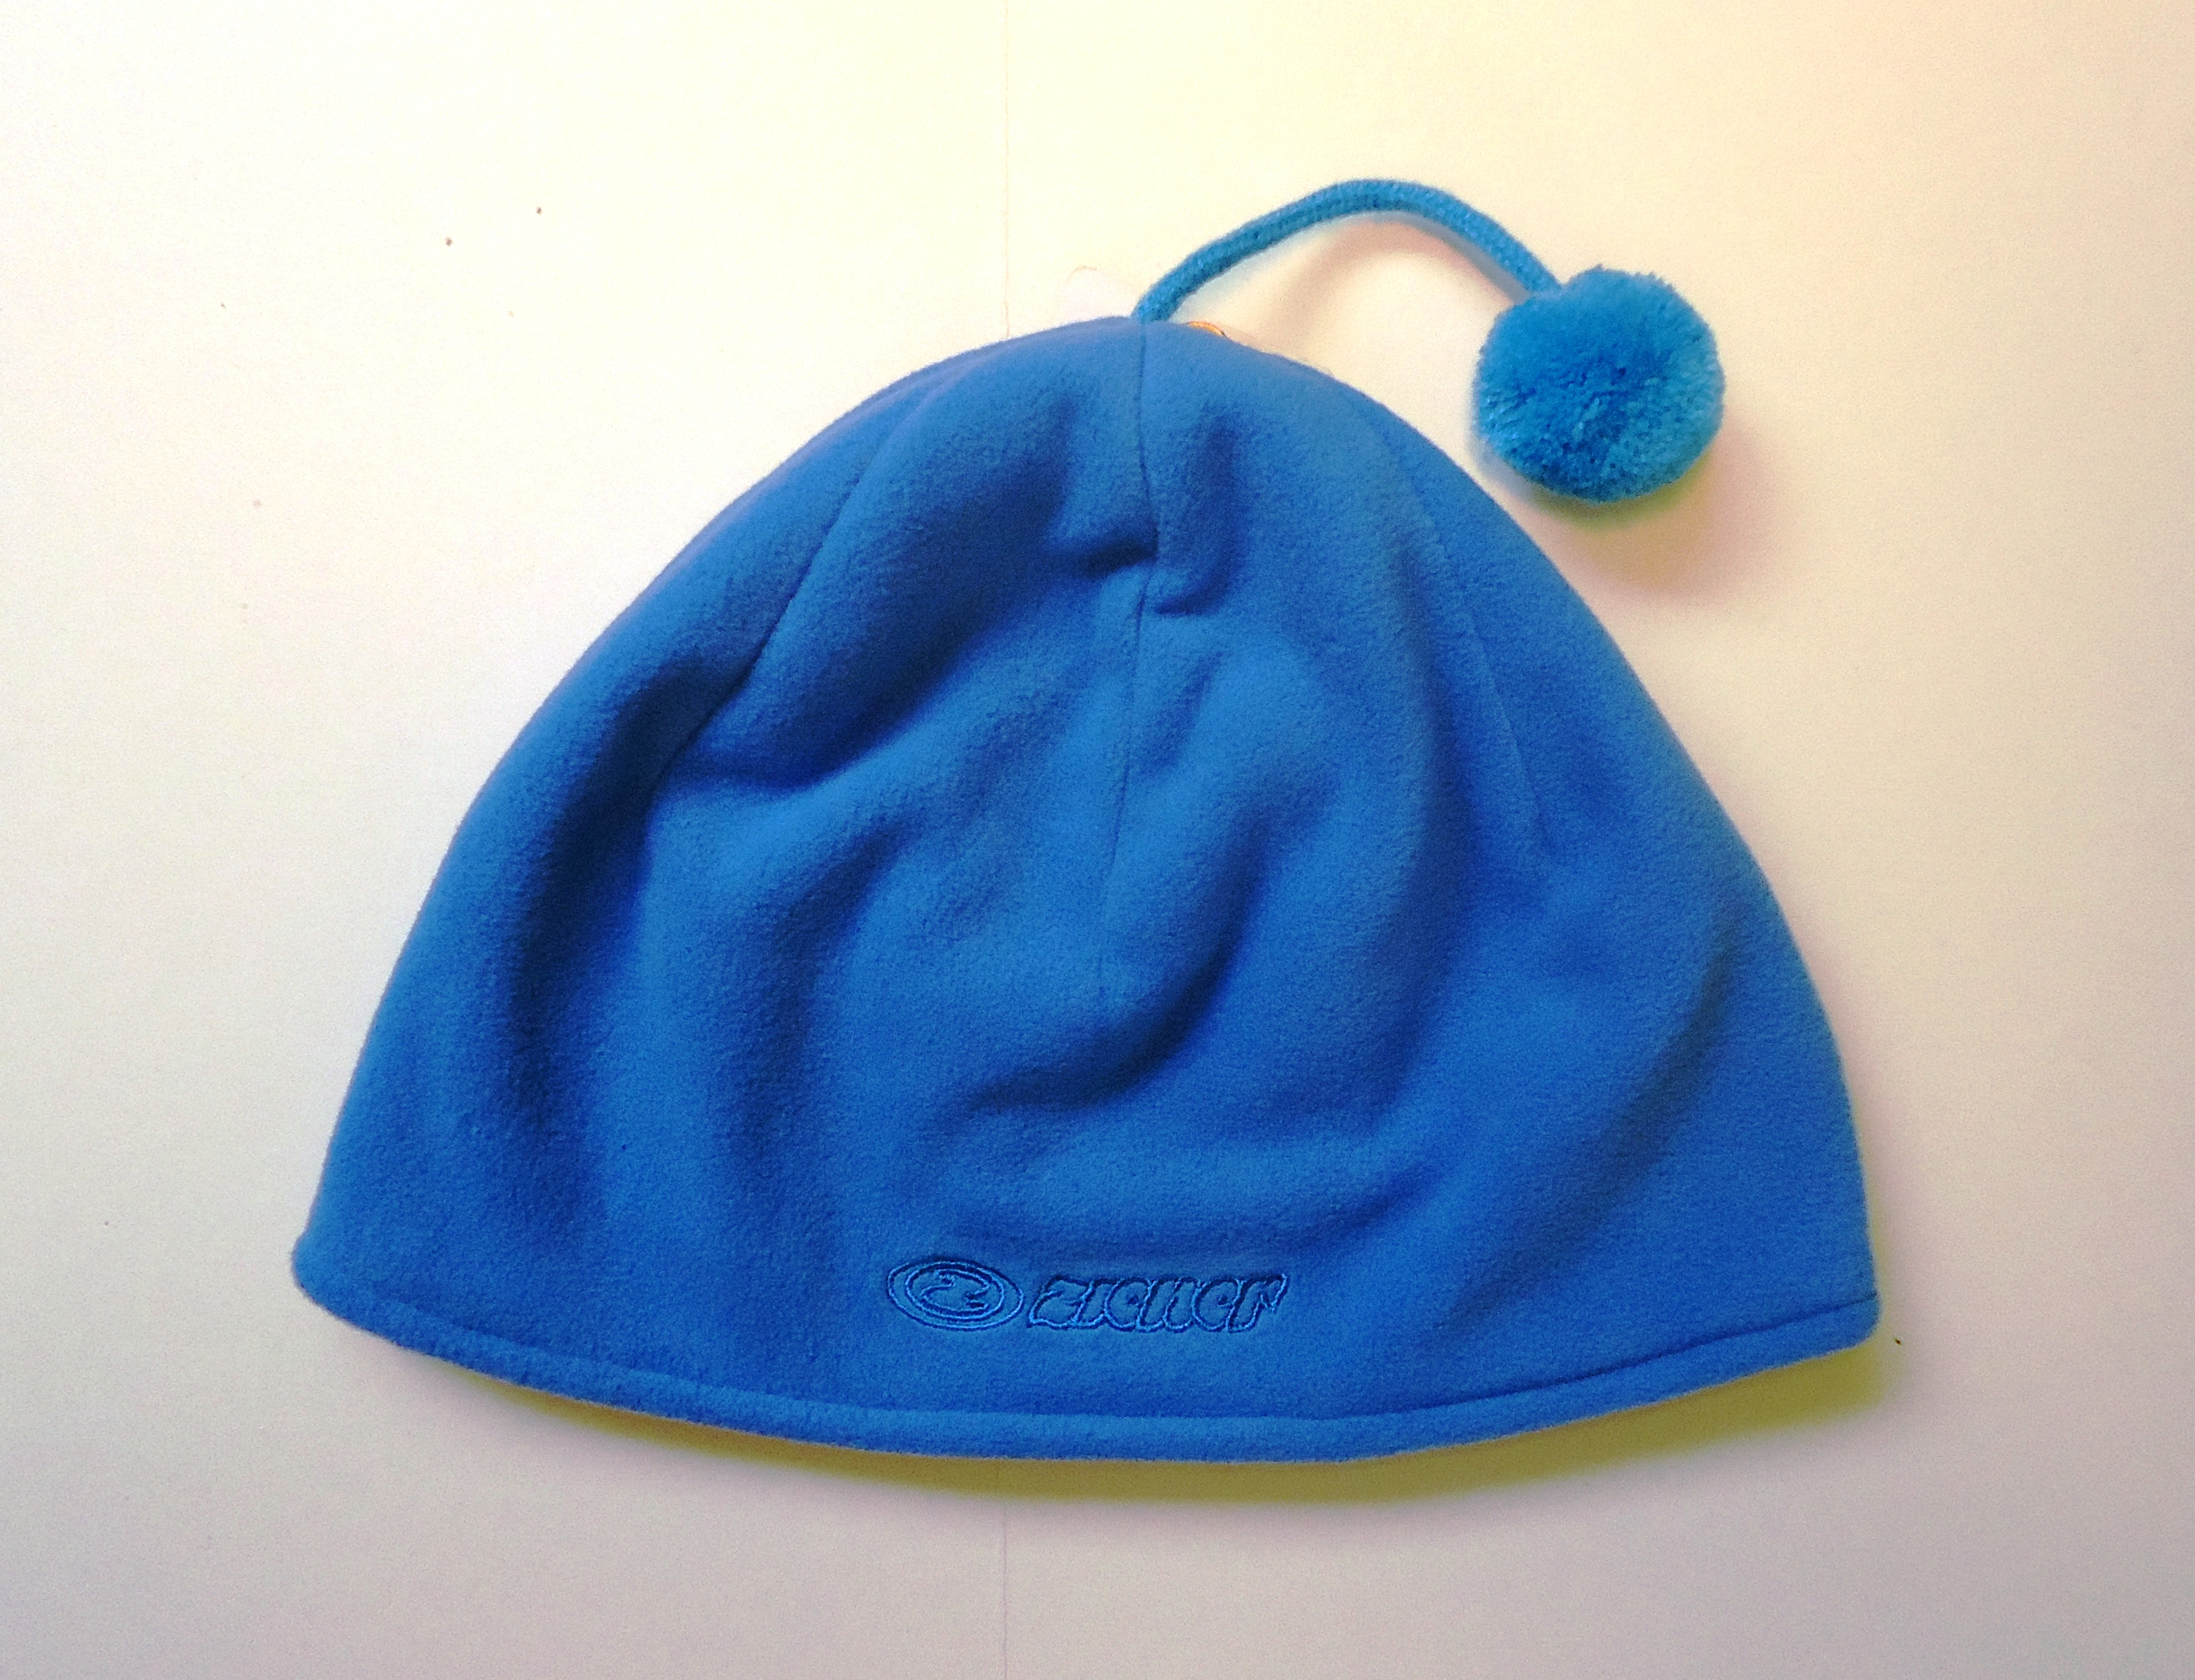 ZIENER Ignore WS hat, blue